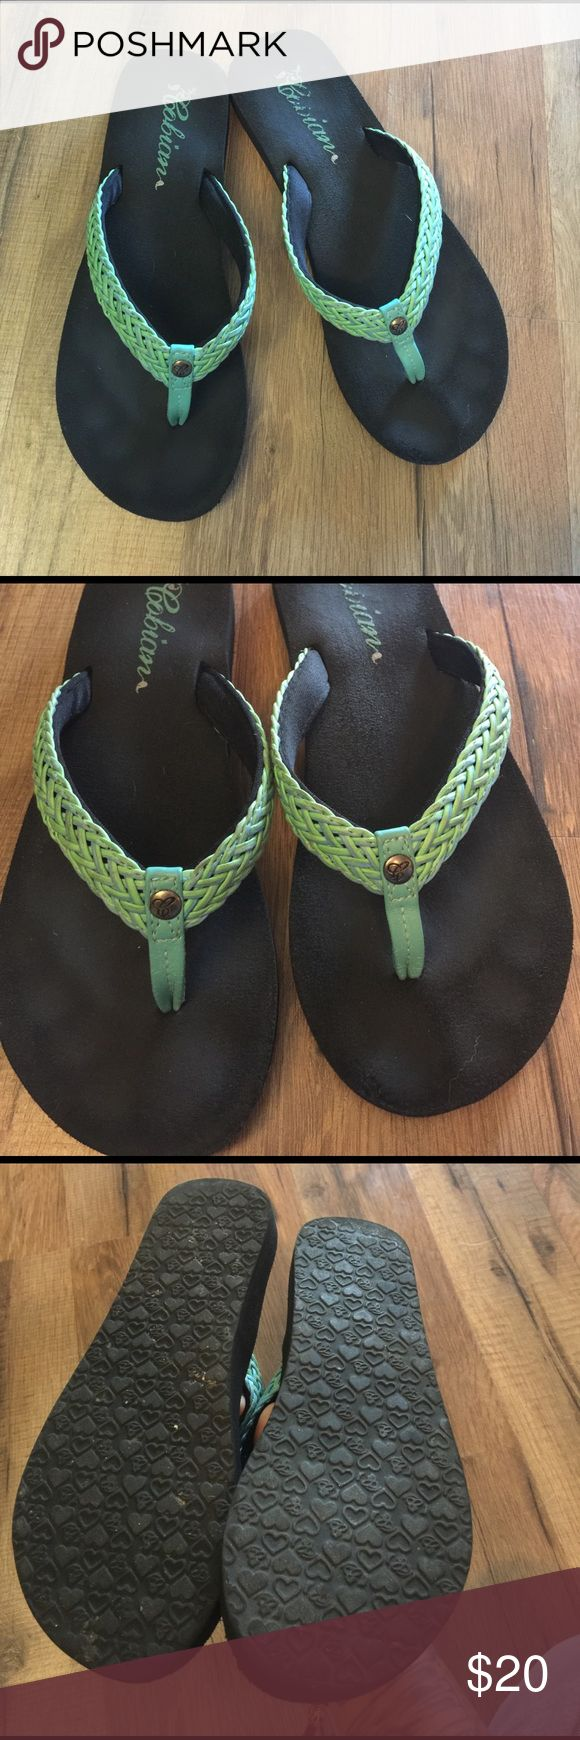 Cobian sandals Size 7 Cobian flip flops . Super squishy and comfortable - purschased in January Cobian Shoes Sandals